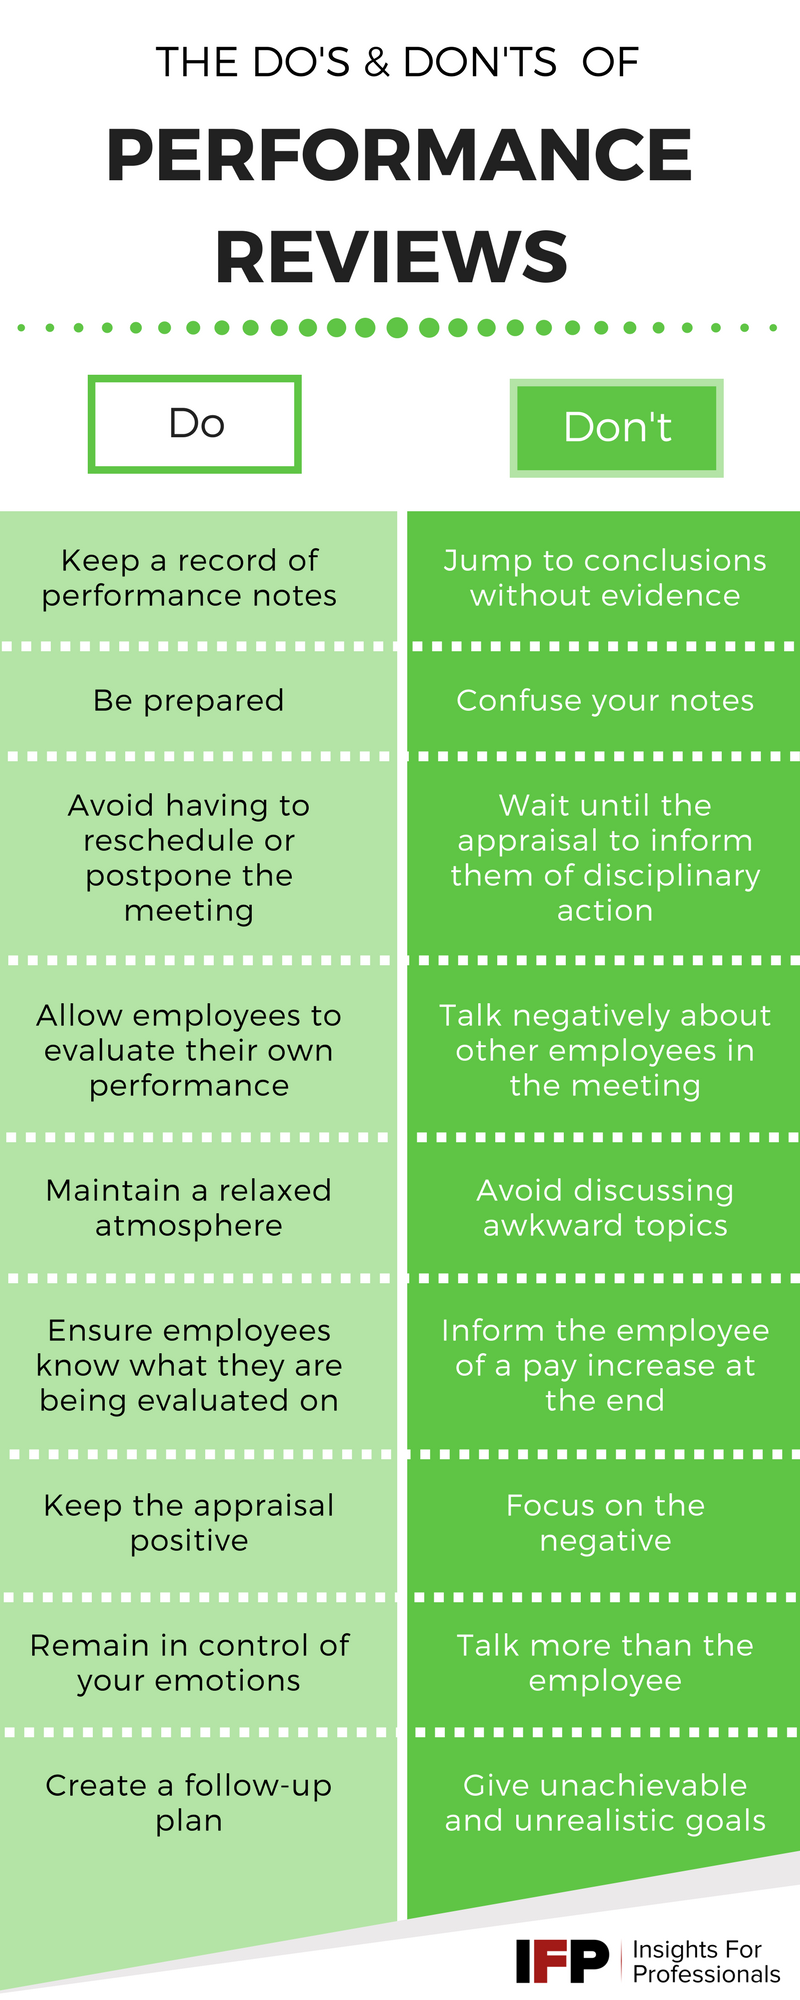 The Do's and Don'ts of Performance Reviews [Infographic]